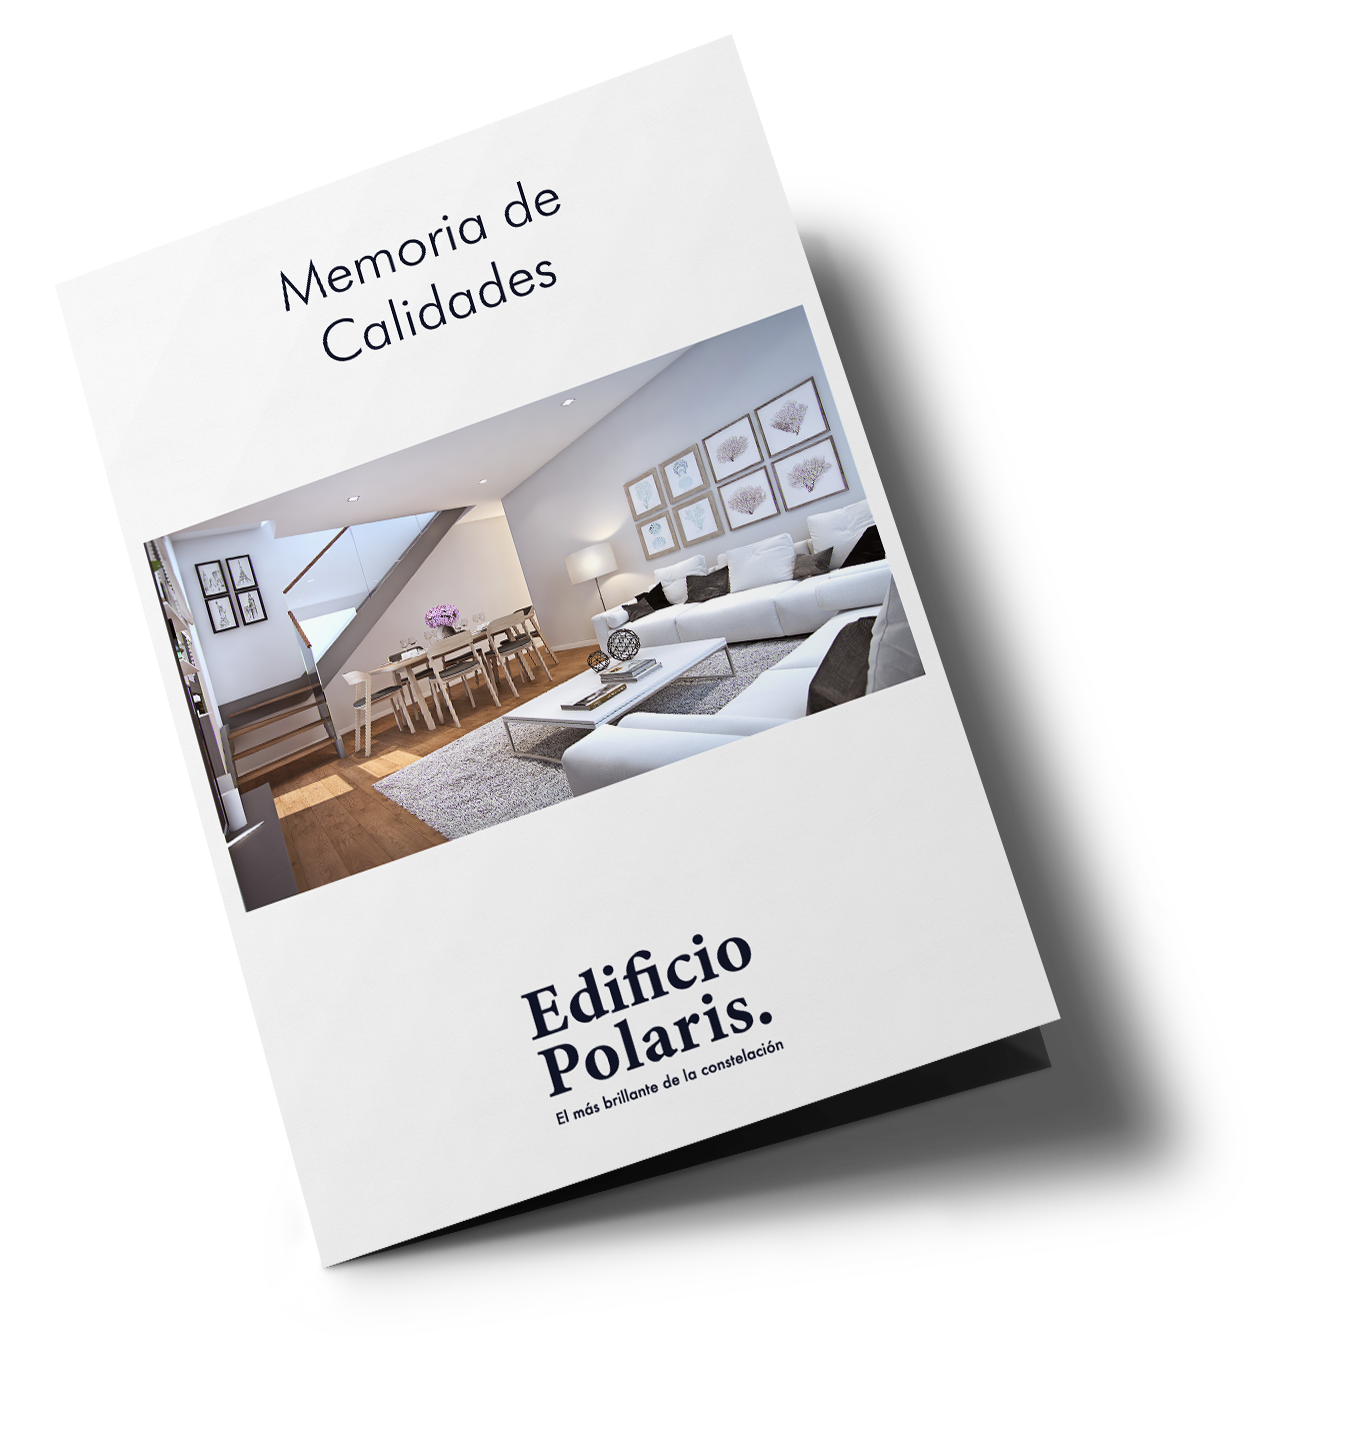 Memoria-Calidades-Edificio-Polaris